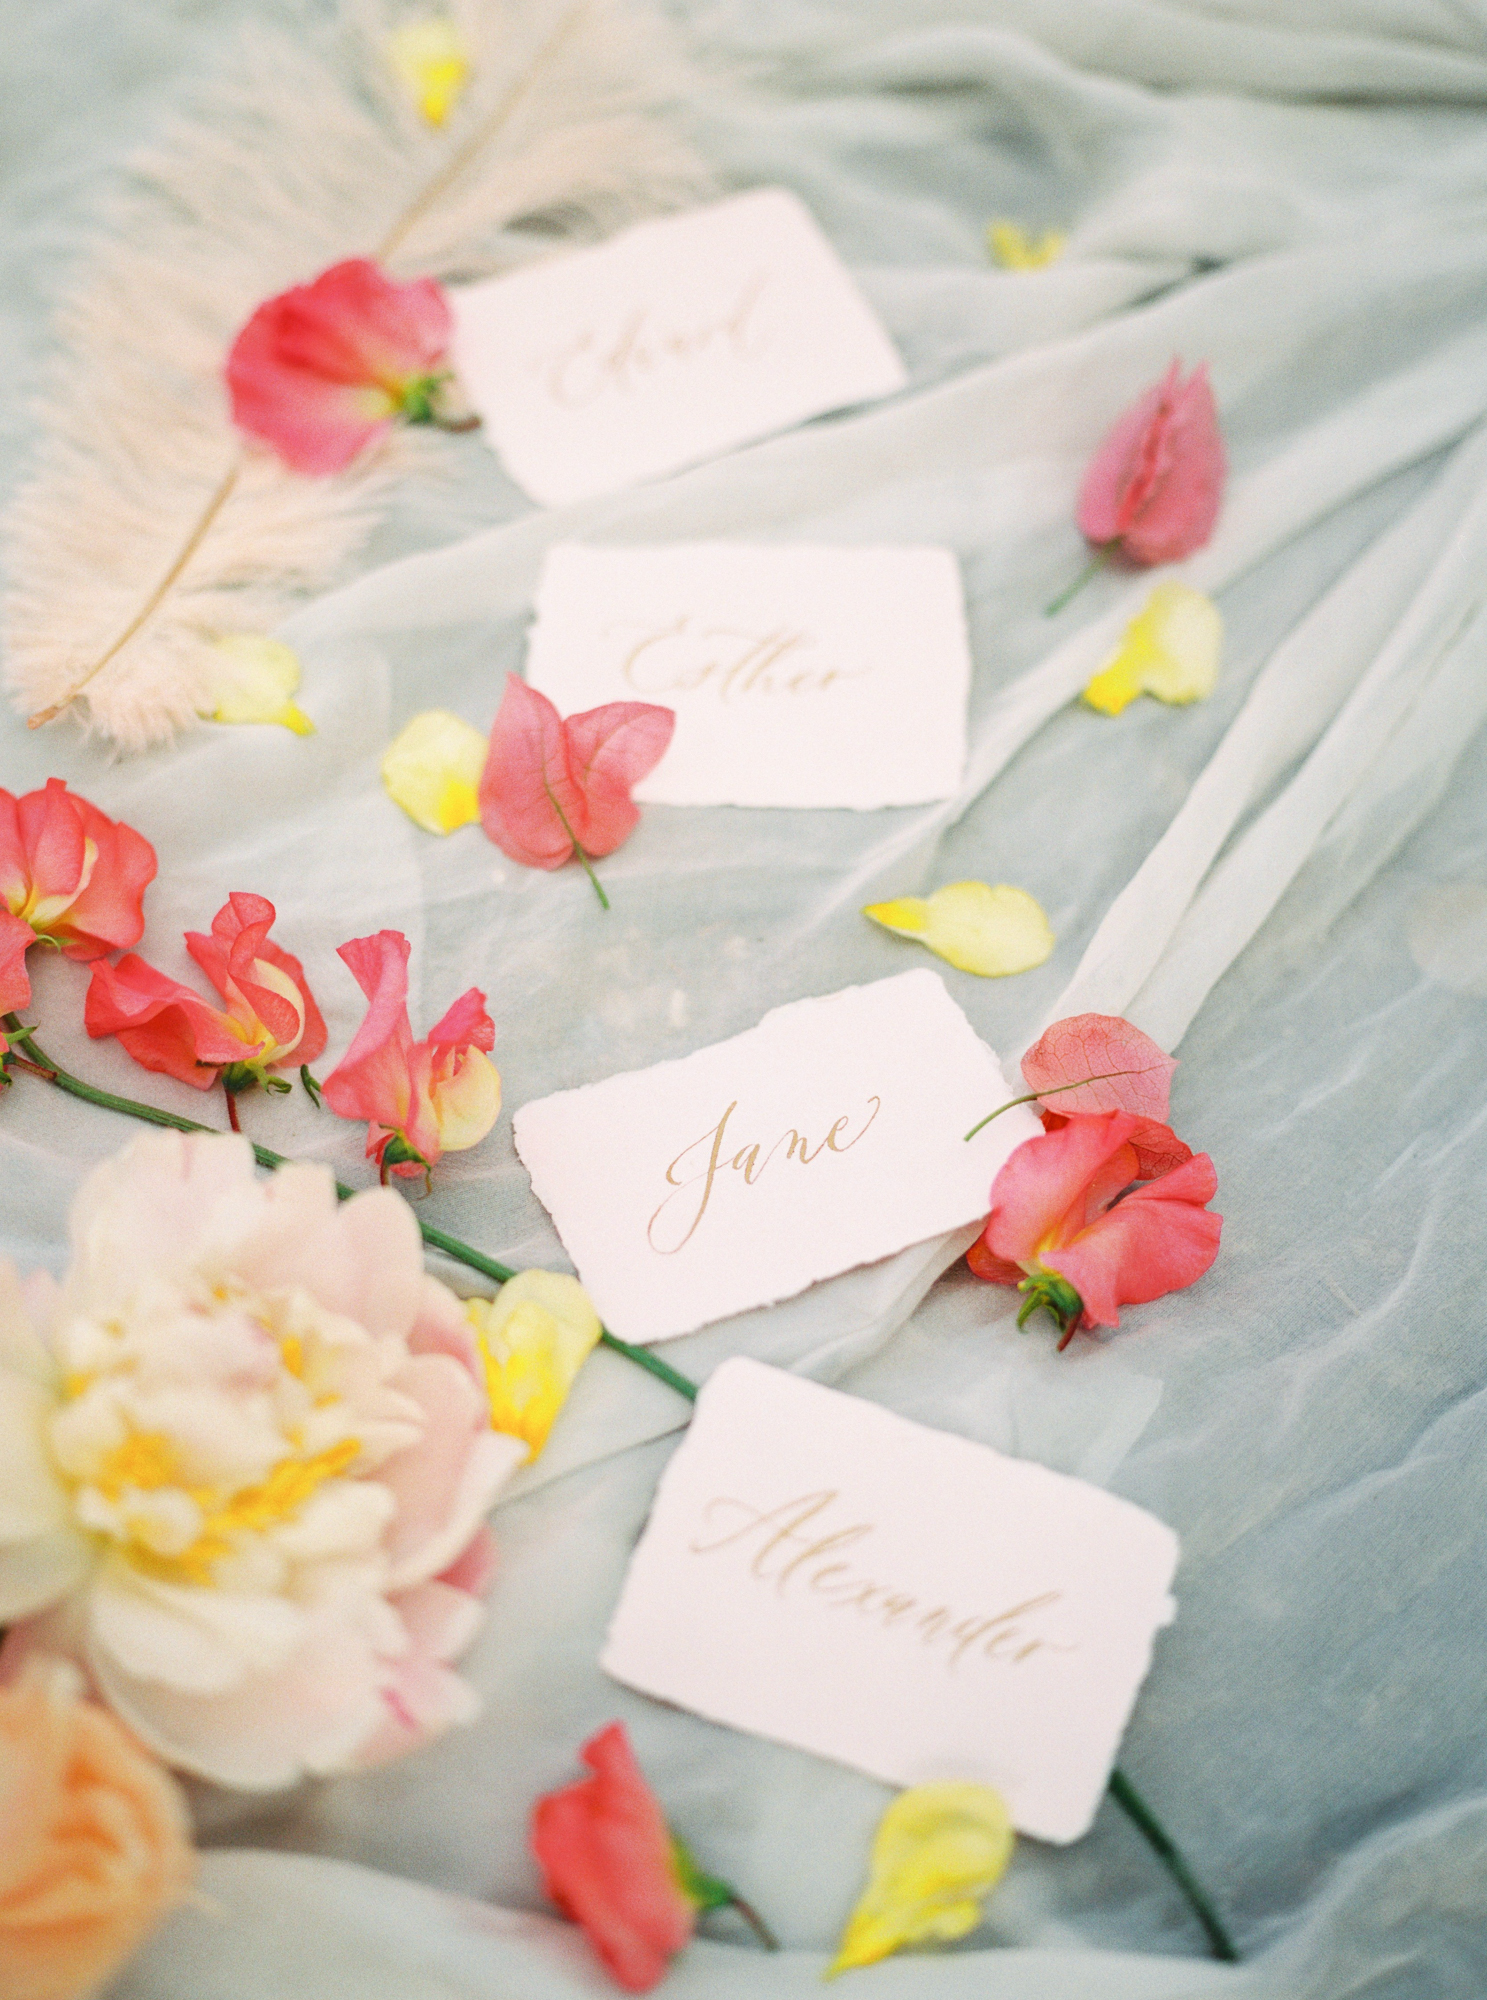 travellur_photoshoot__summer_in_versailles_wedding_flowers_bridal_luxe_shoot_floral_france_isibeal_studio_stationery_dominique_alba_caligraphy.jpg